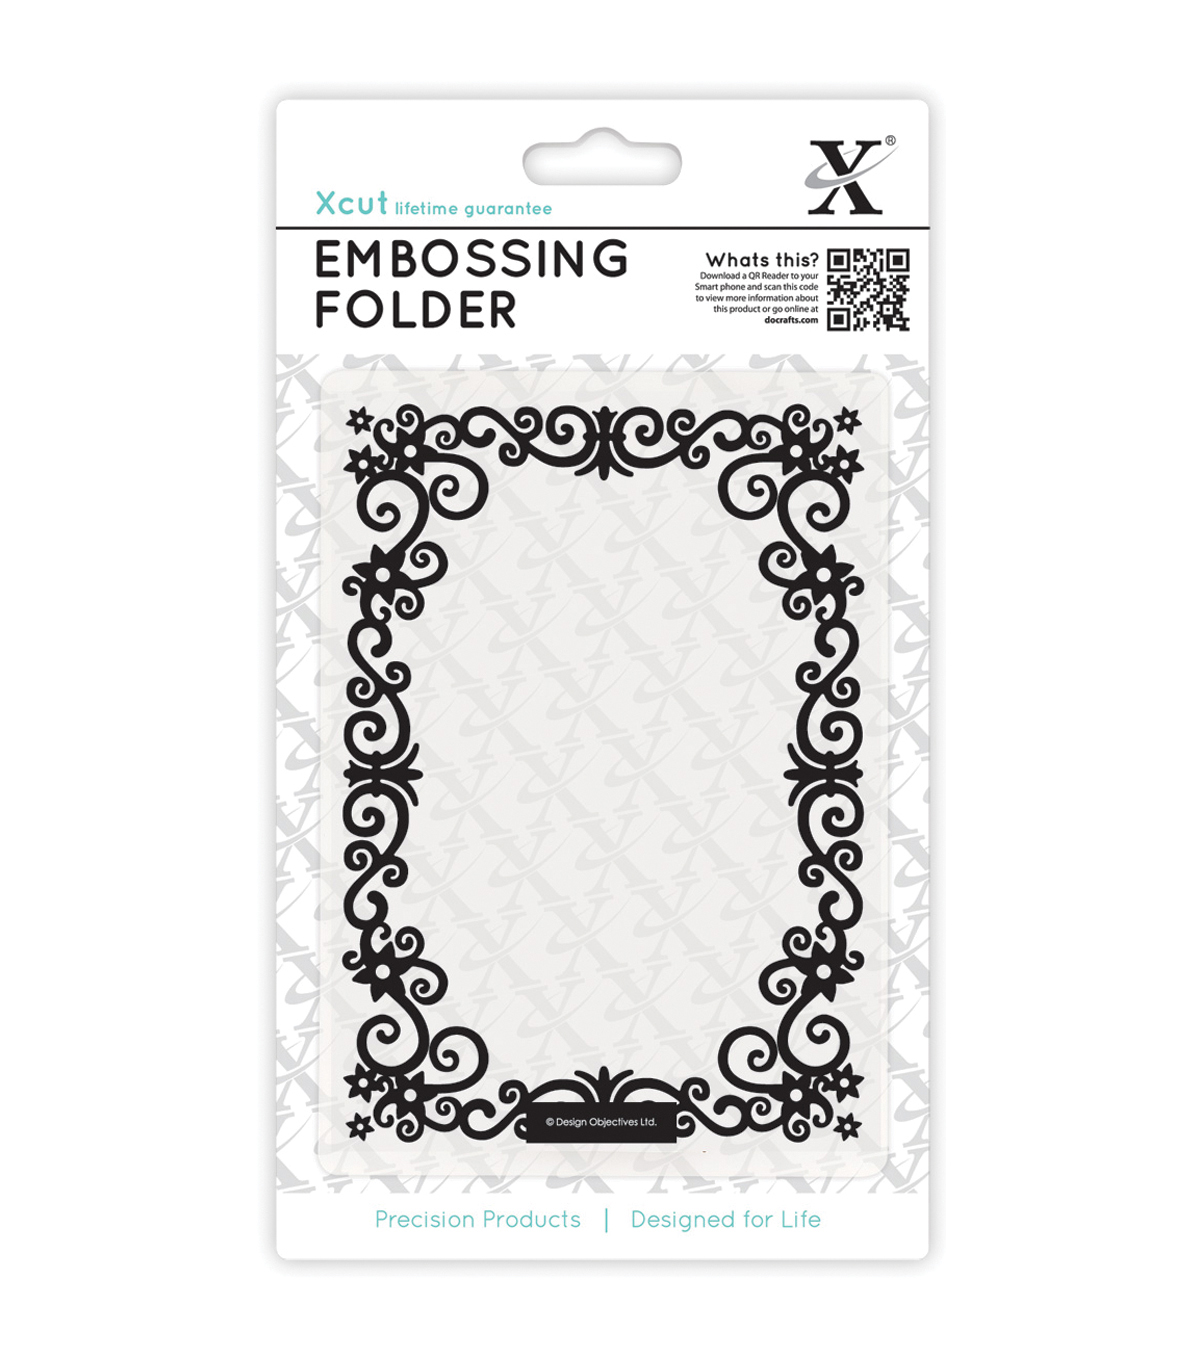 Xcut Universal A6 Floral Frame Embossing Folder